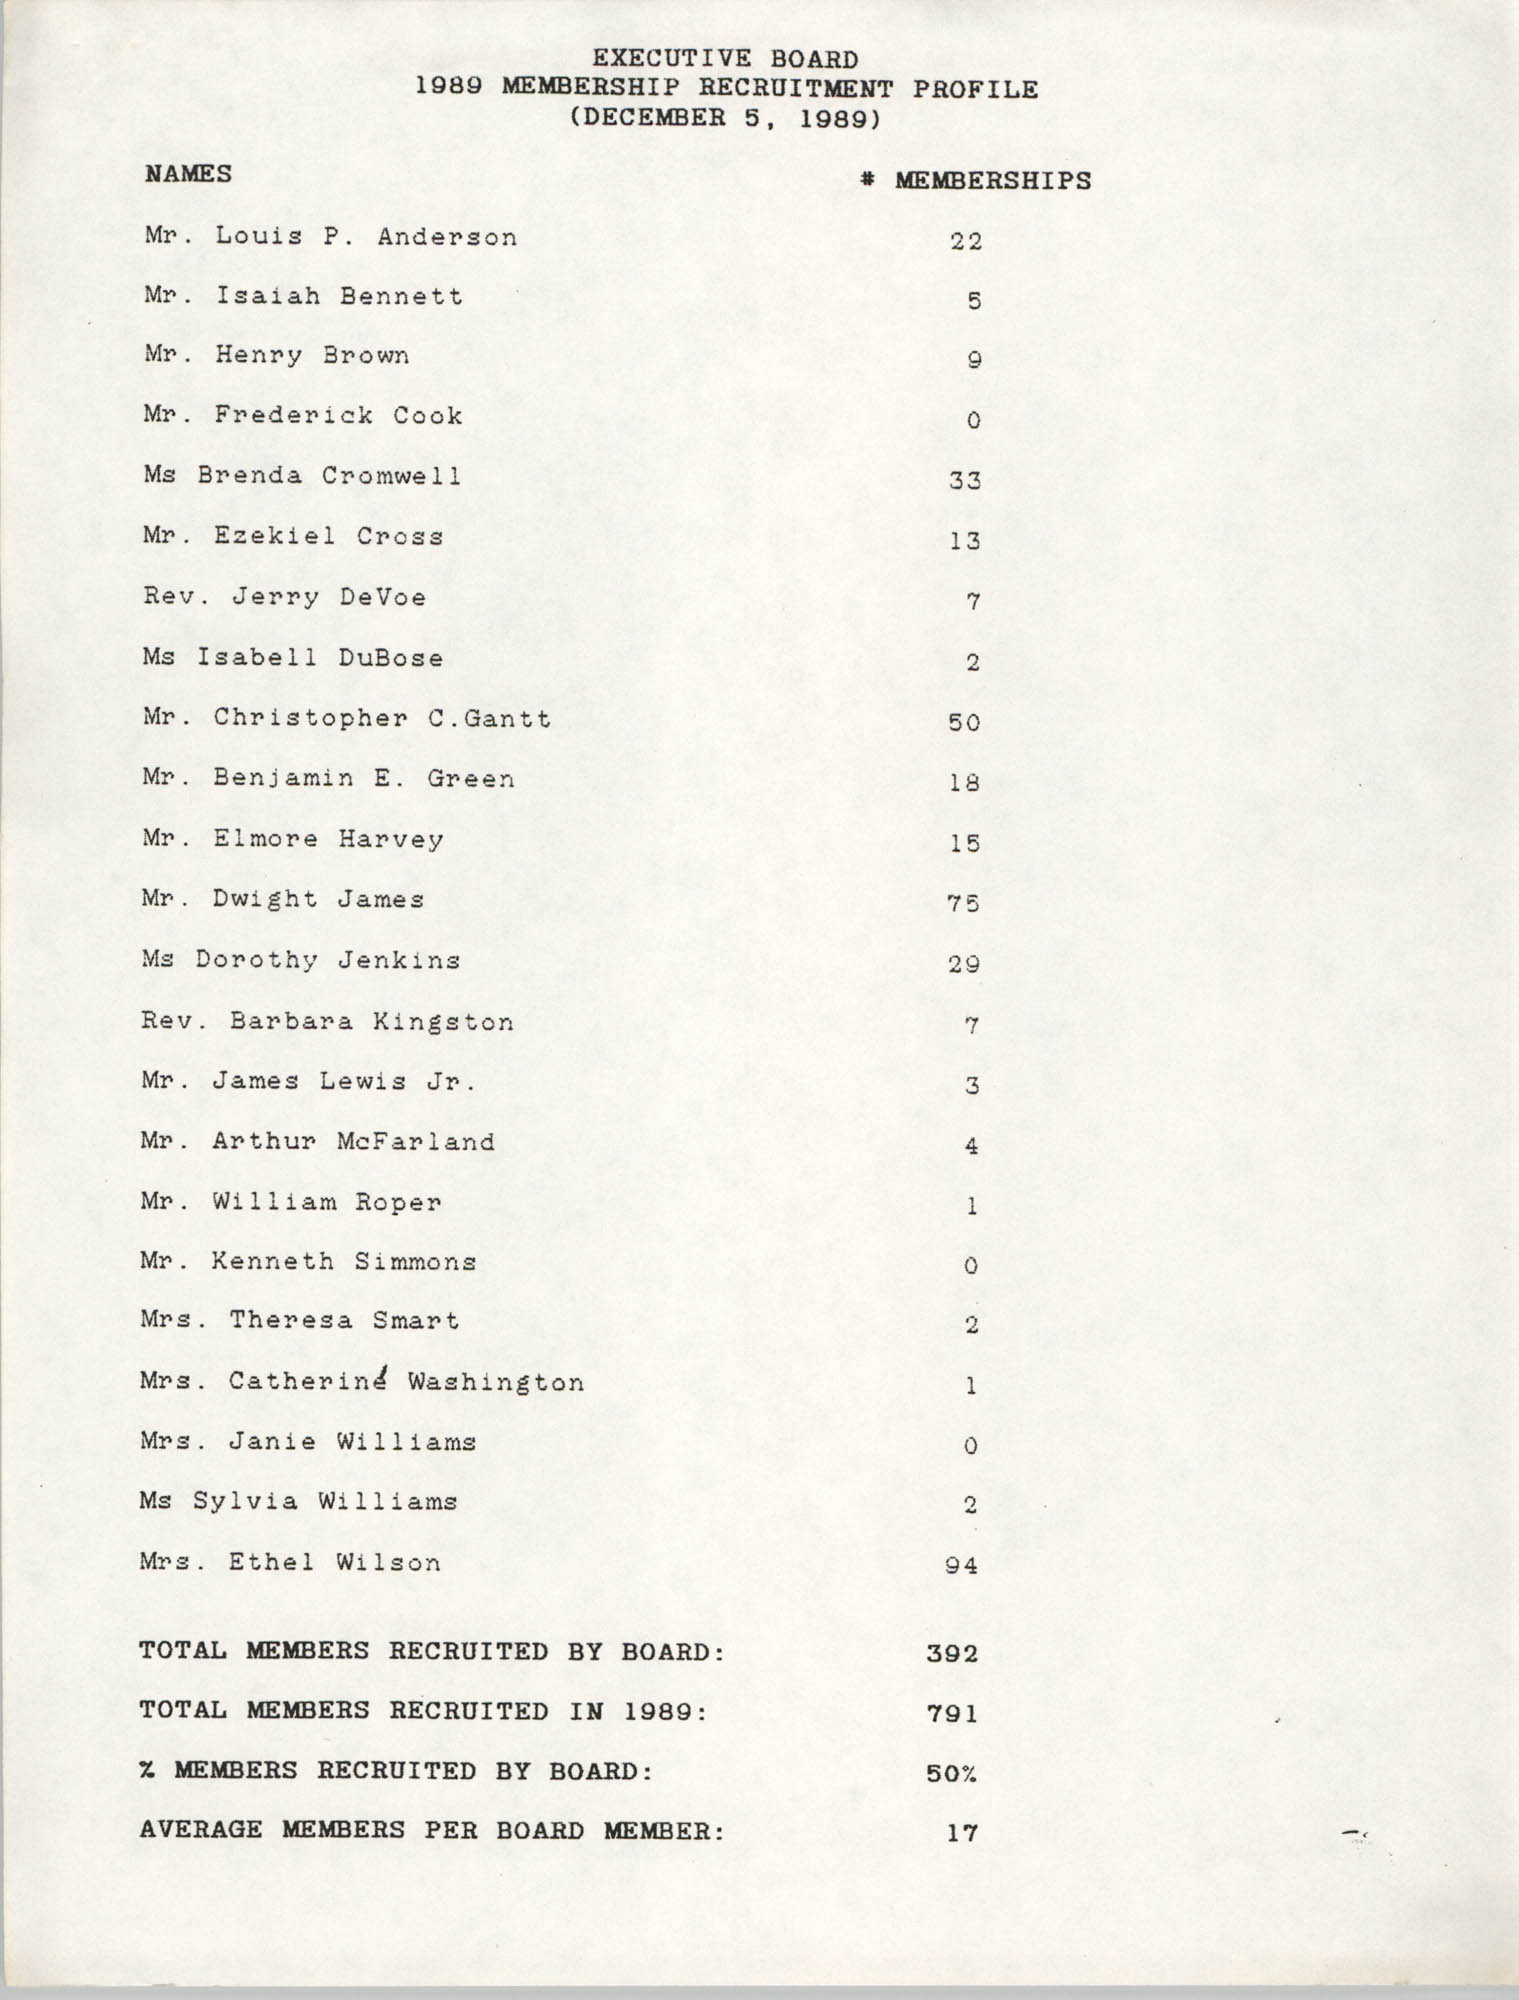 Membership Recruitment Profile, Executive Board, National Association for the Advancement of Colored People, December 5, 1989